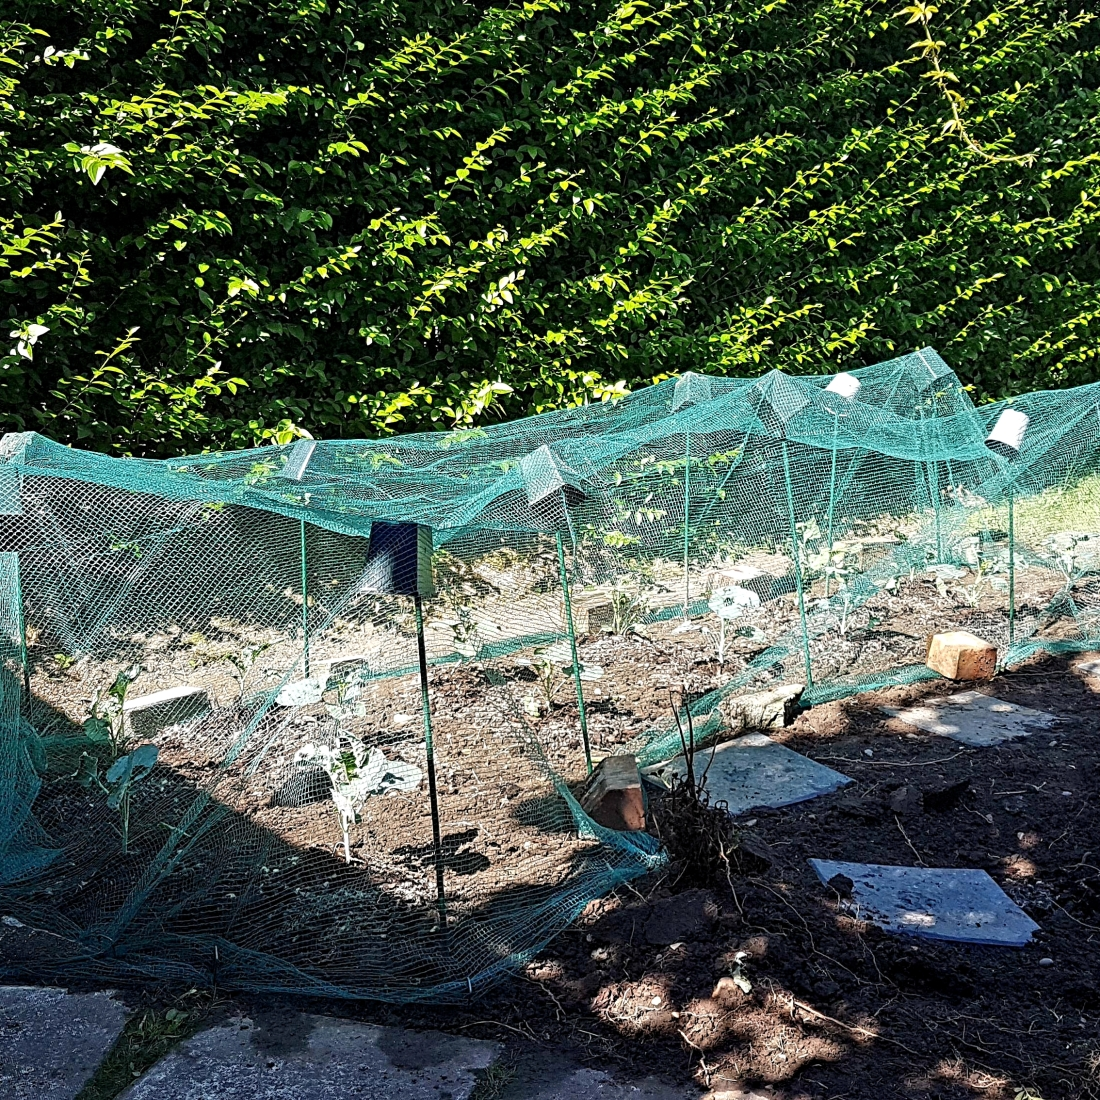 Brassicas, netted